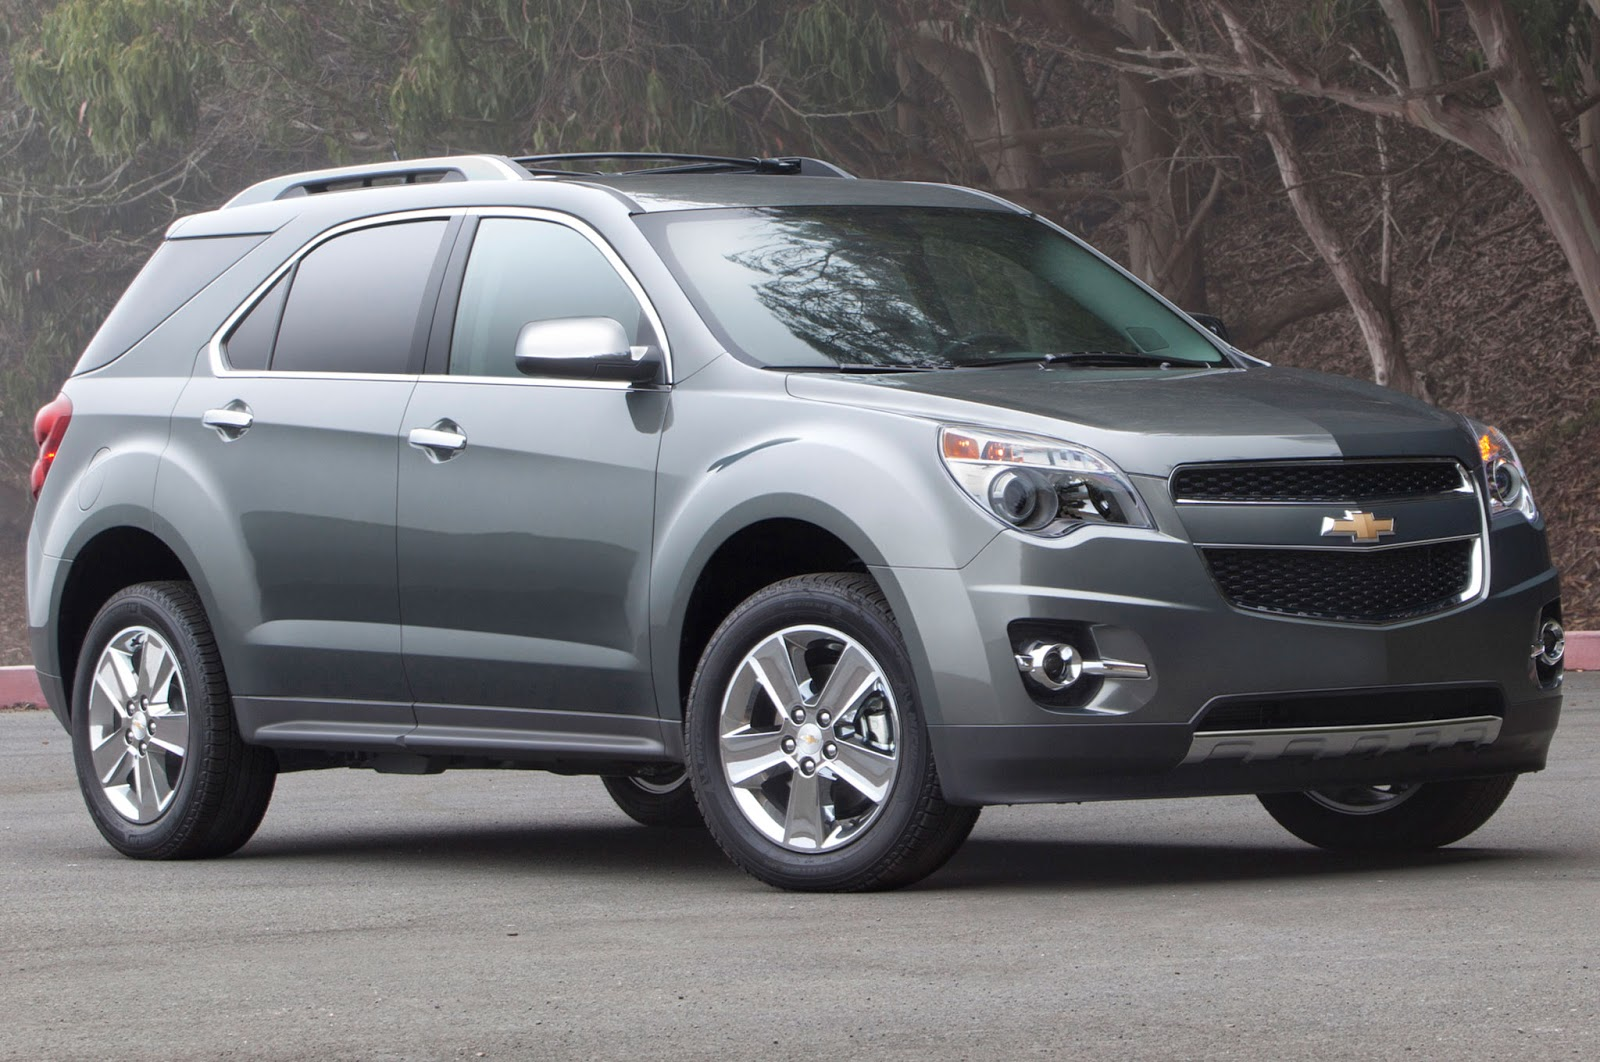 2015 chevrolet equinox exterior colors. Black Bedroom Furniture Sets. Home Design Ideas